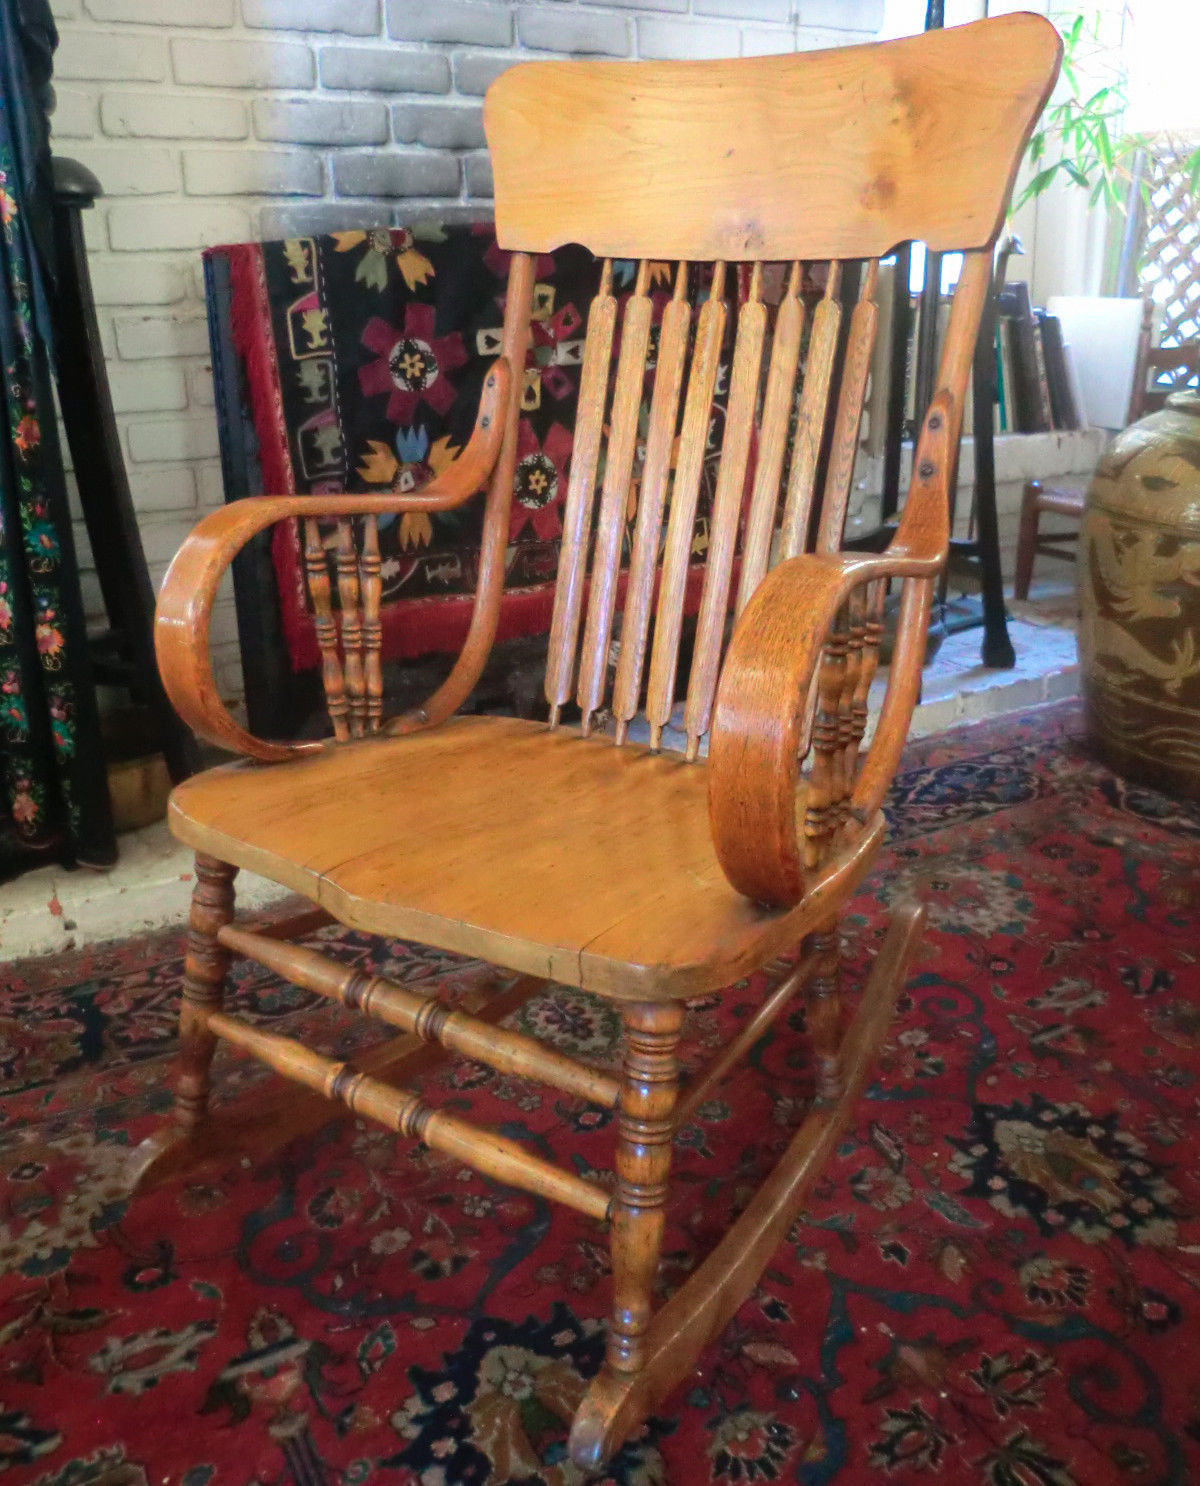 Bentwood rocking chair value - Bentwood Rocking Chair Value